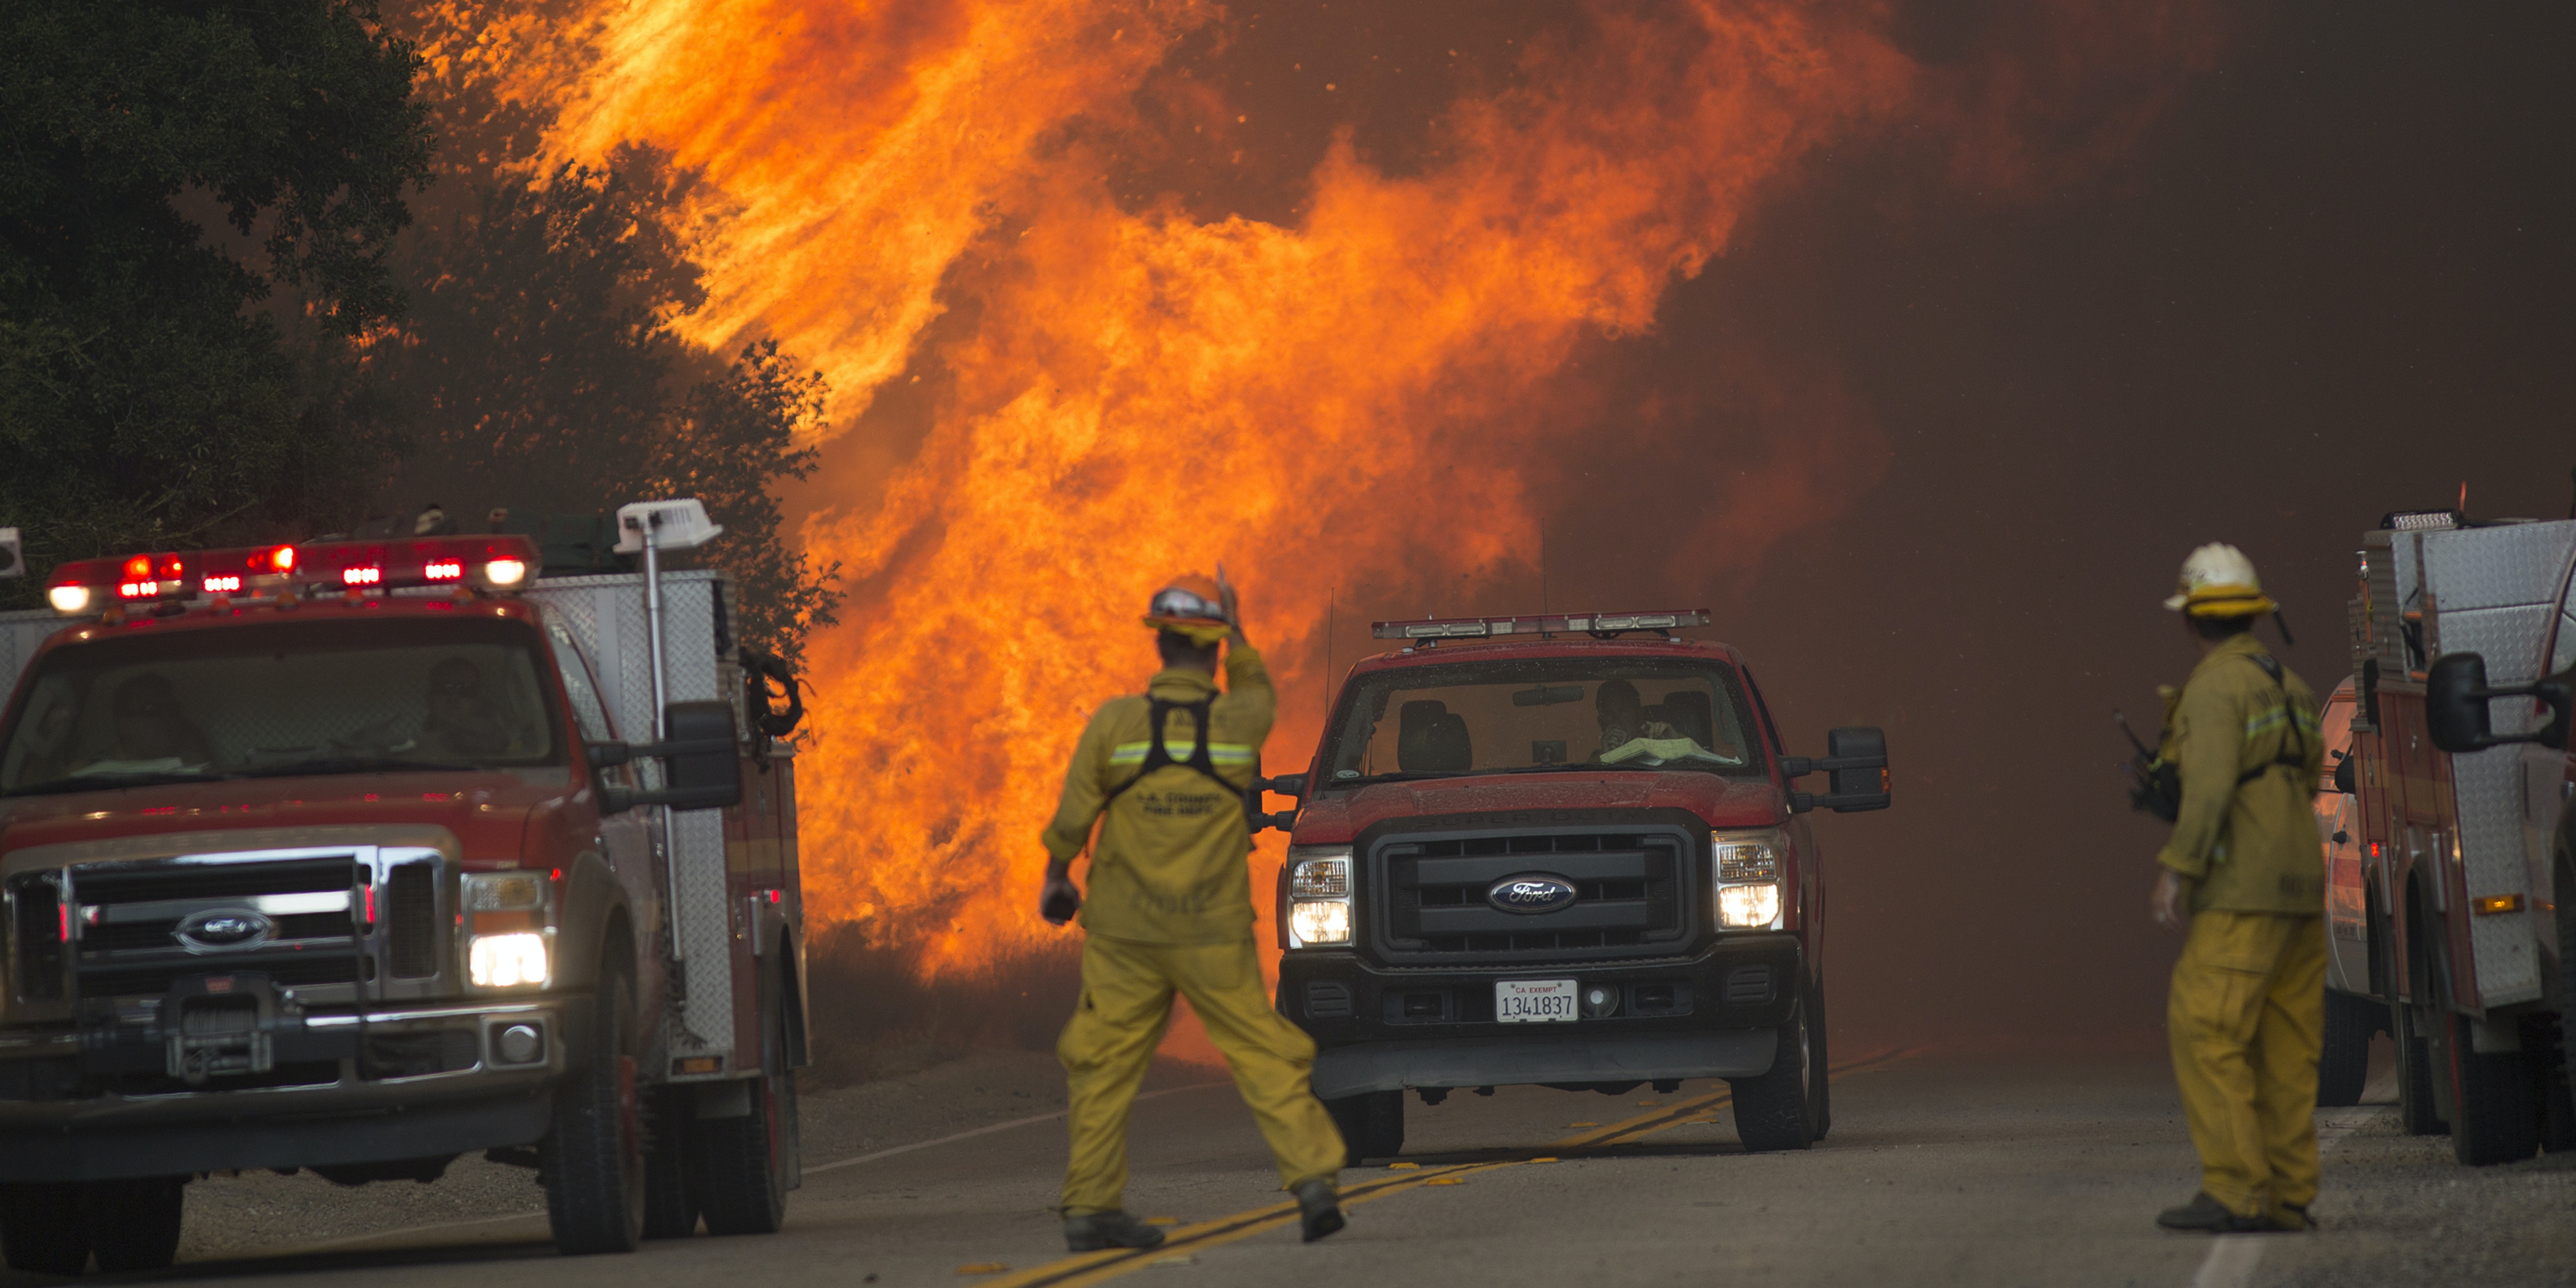 Firefighters are forced to retreat as flame close in on them in Placerita Canyon at the Sand Fire on July 24, 2016 in Santa Clarita, California. Triple-digit temperatures and dry conditions are fueling the wildfire, which has burned across at least 22,000 acres so far and is only 10% contained.